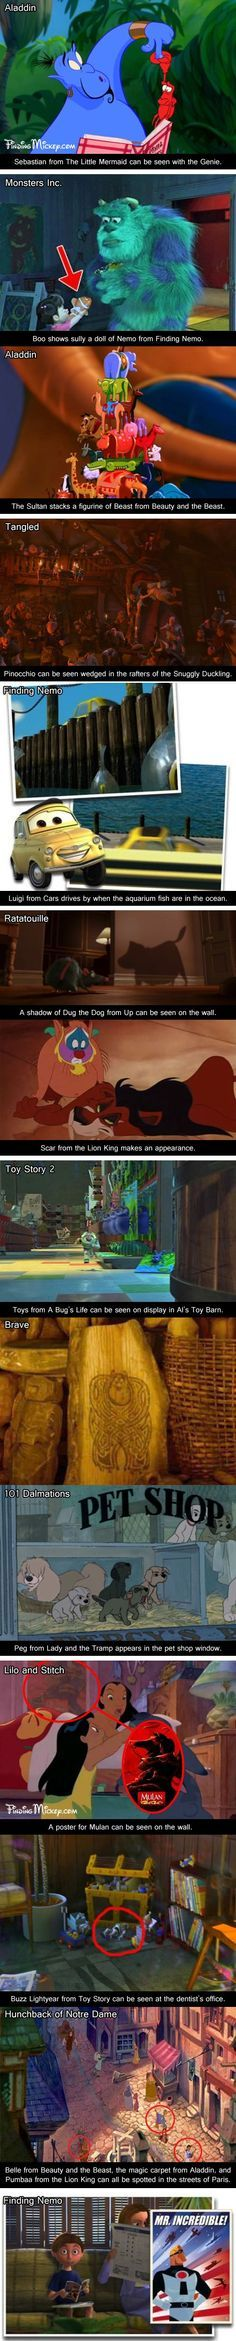 Characters showing up in other Disney movies. 25 Signs You Grew Up With Disney   Things for Geeks tjn